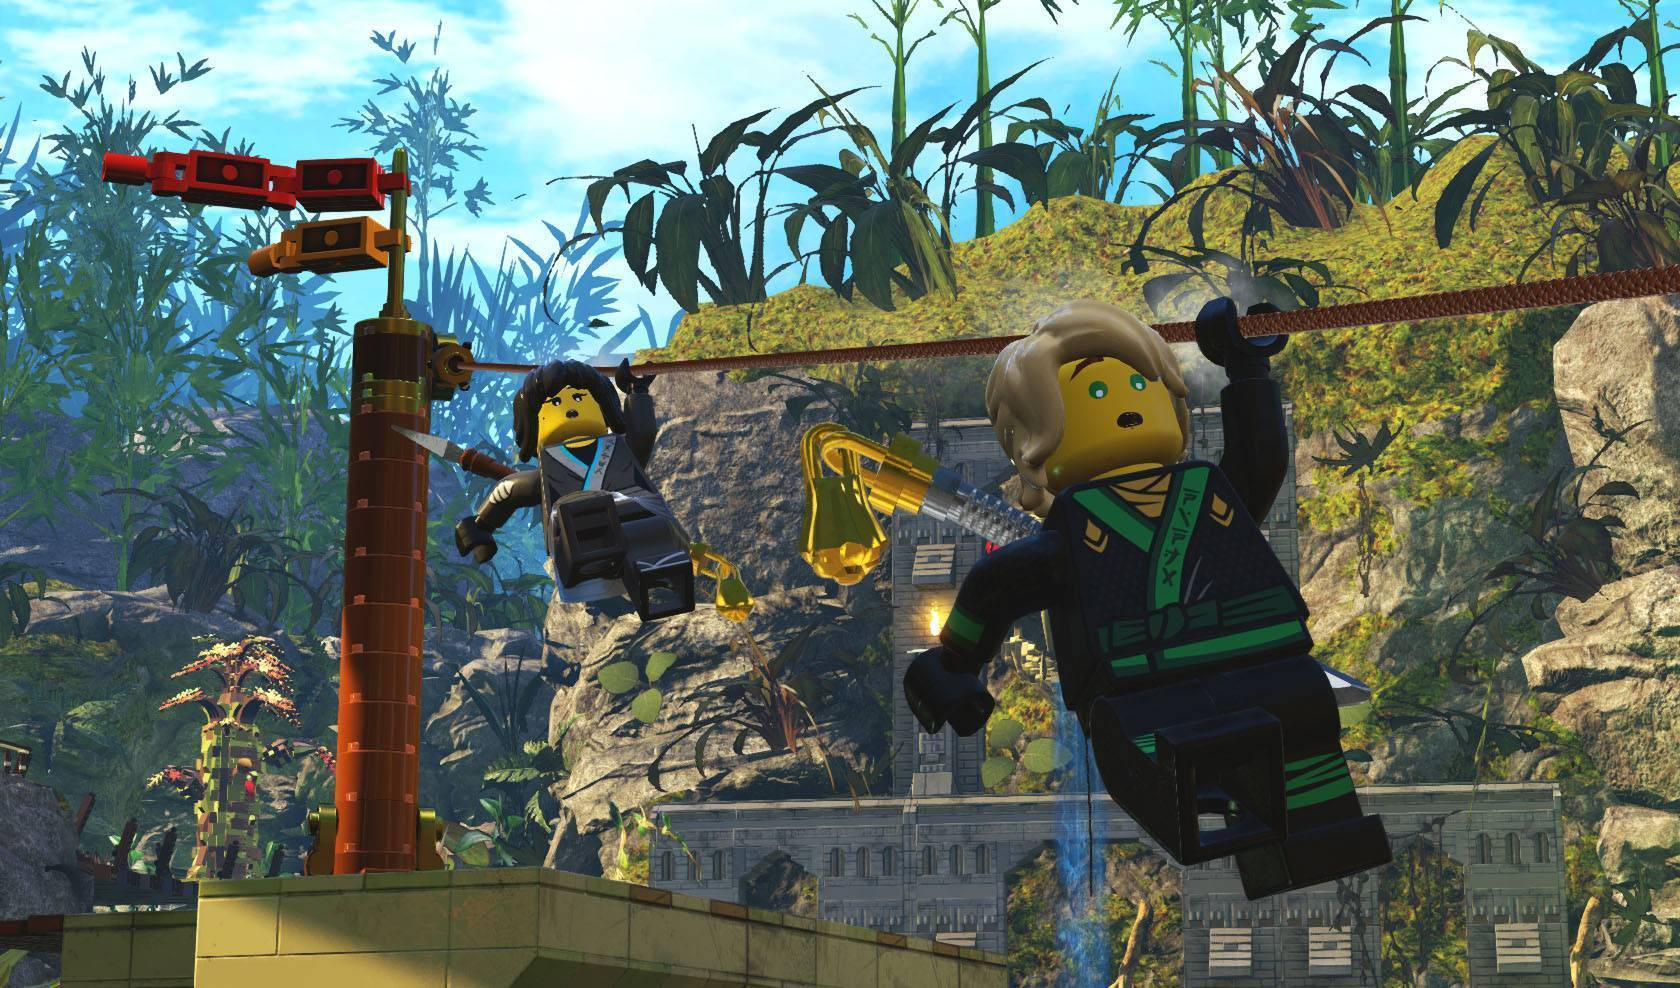 The Lego Ninjago Movie The Lego Ninjago Movie Video Game